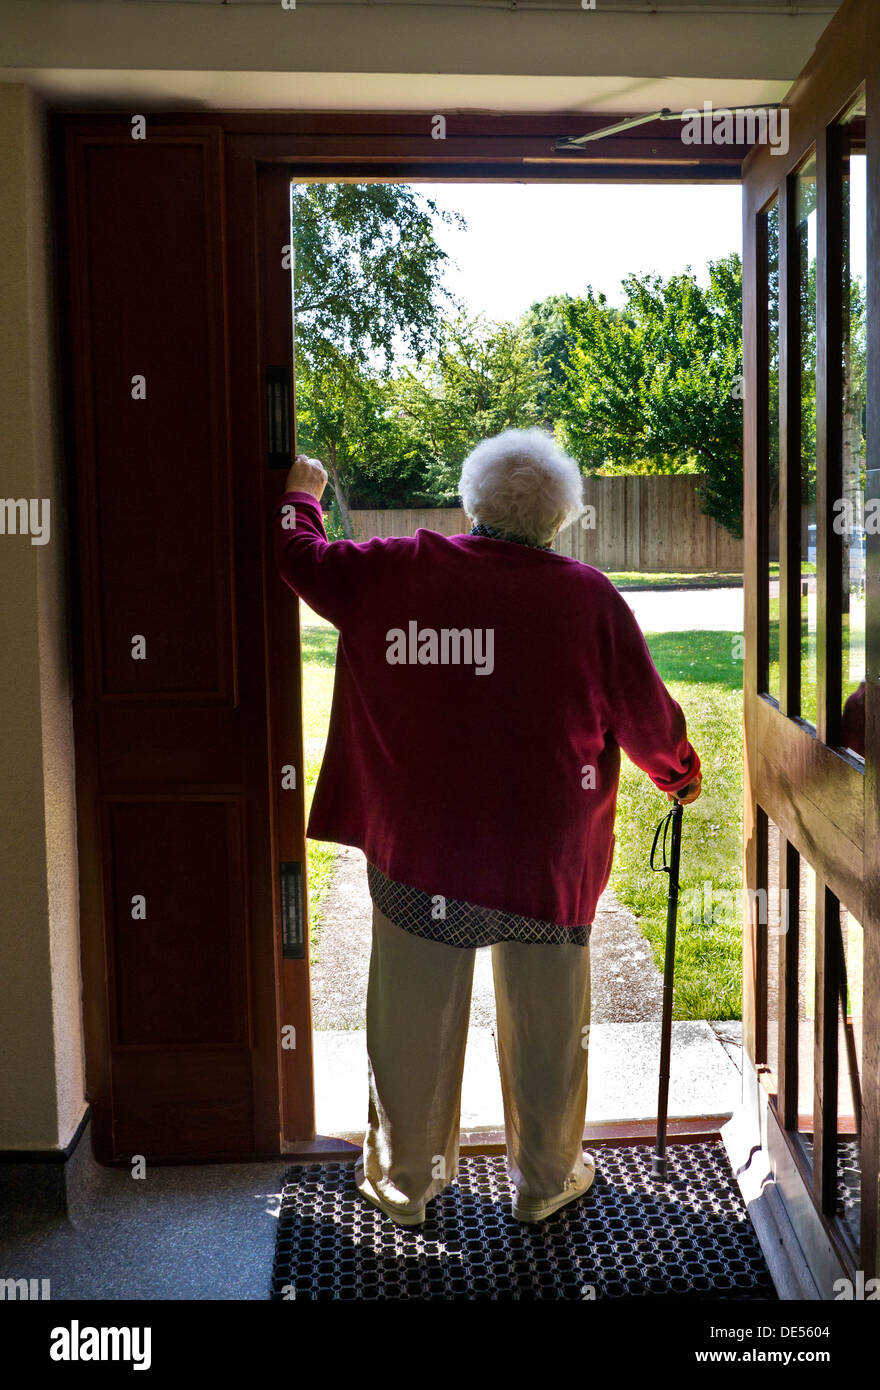 Pensive Elderly Senior Old Age Lady Standing Alone With